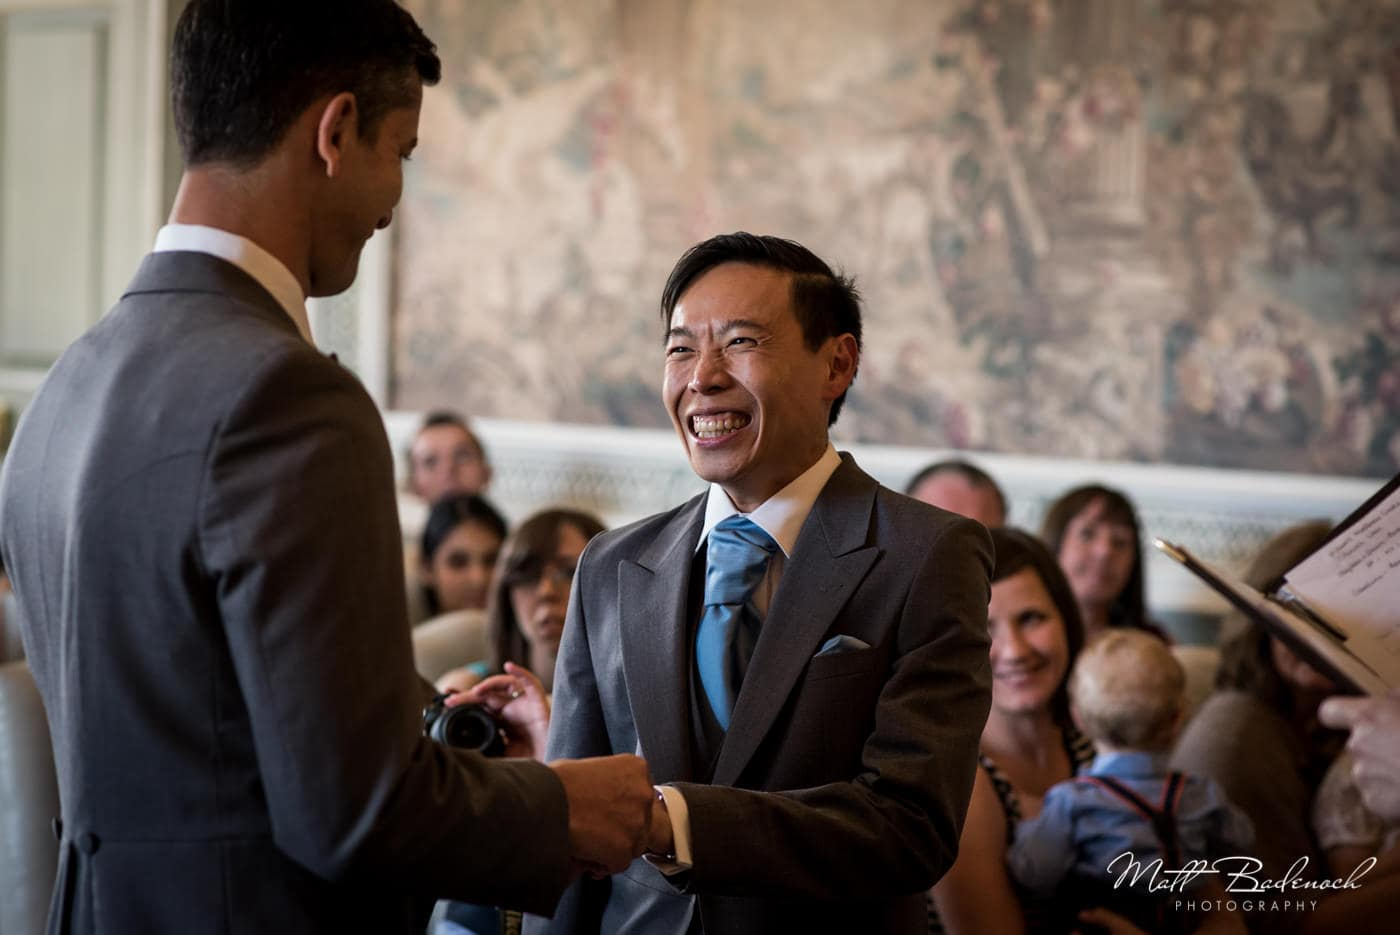 Groom smiling during ceremony at his Leeds Castle Wedding